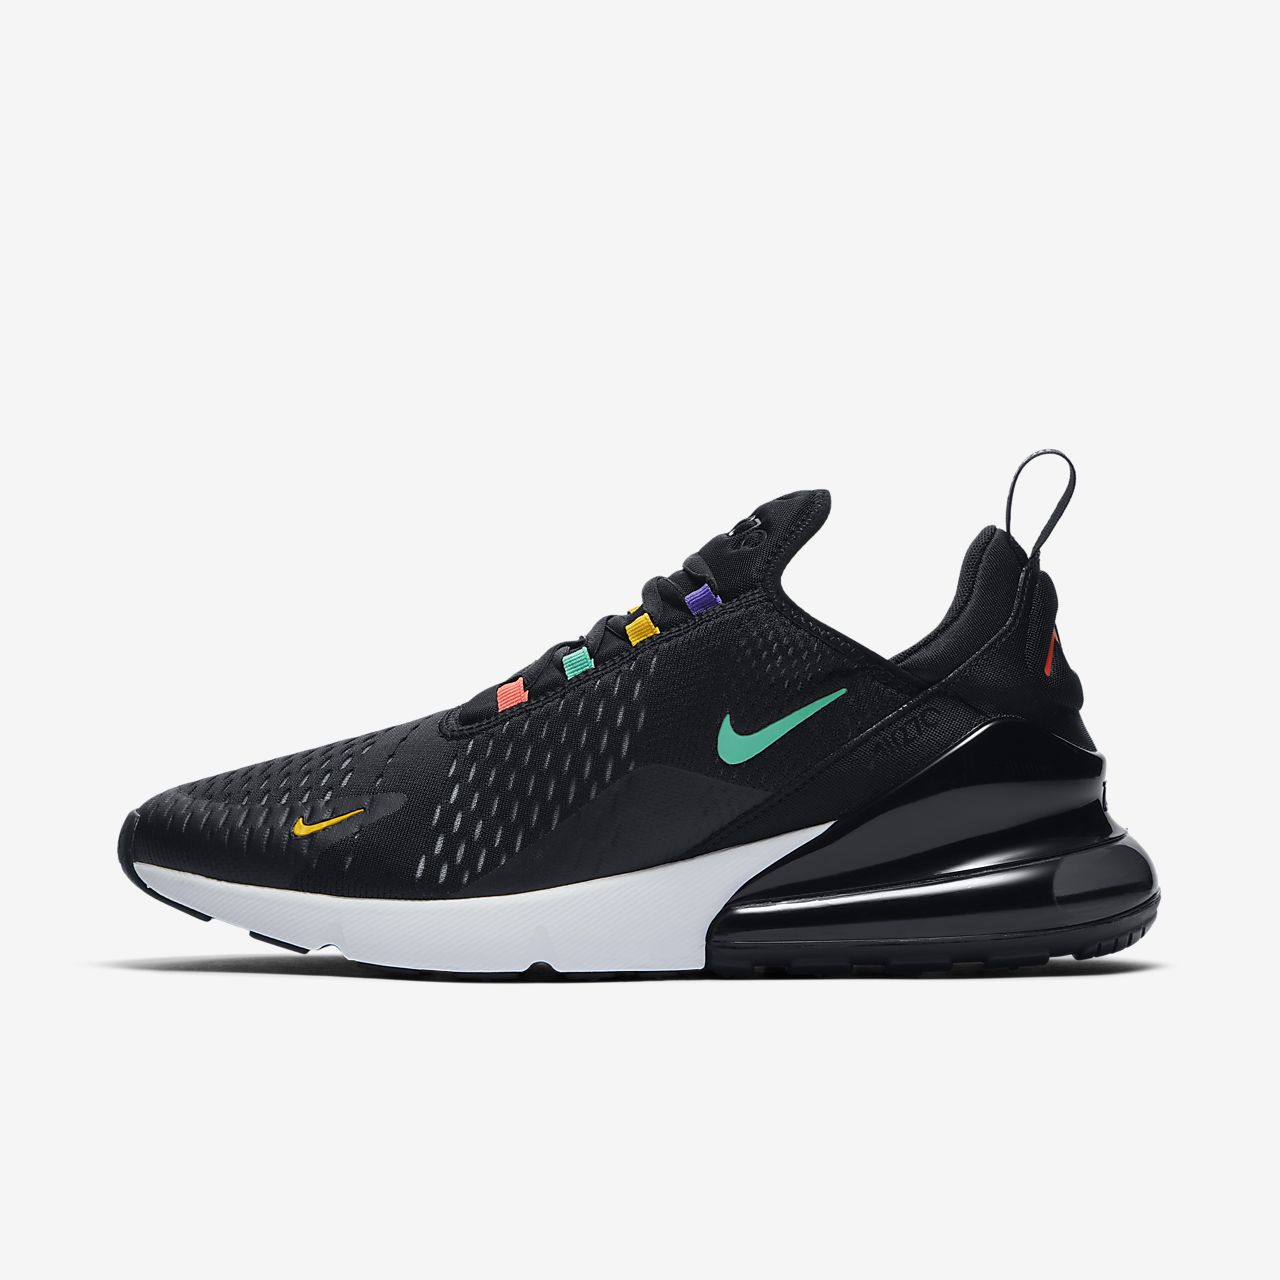 the best attitude b94ad 73581 Nike Air Max 270 Men's Shoe